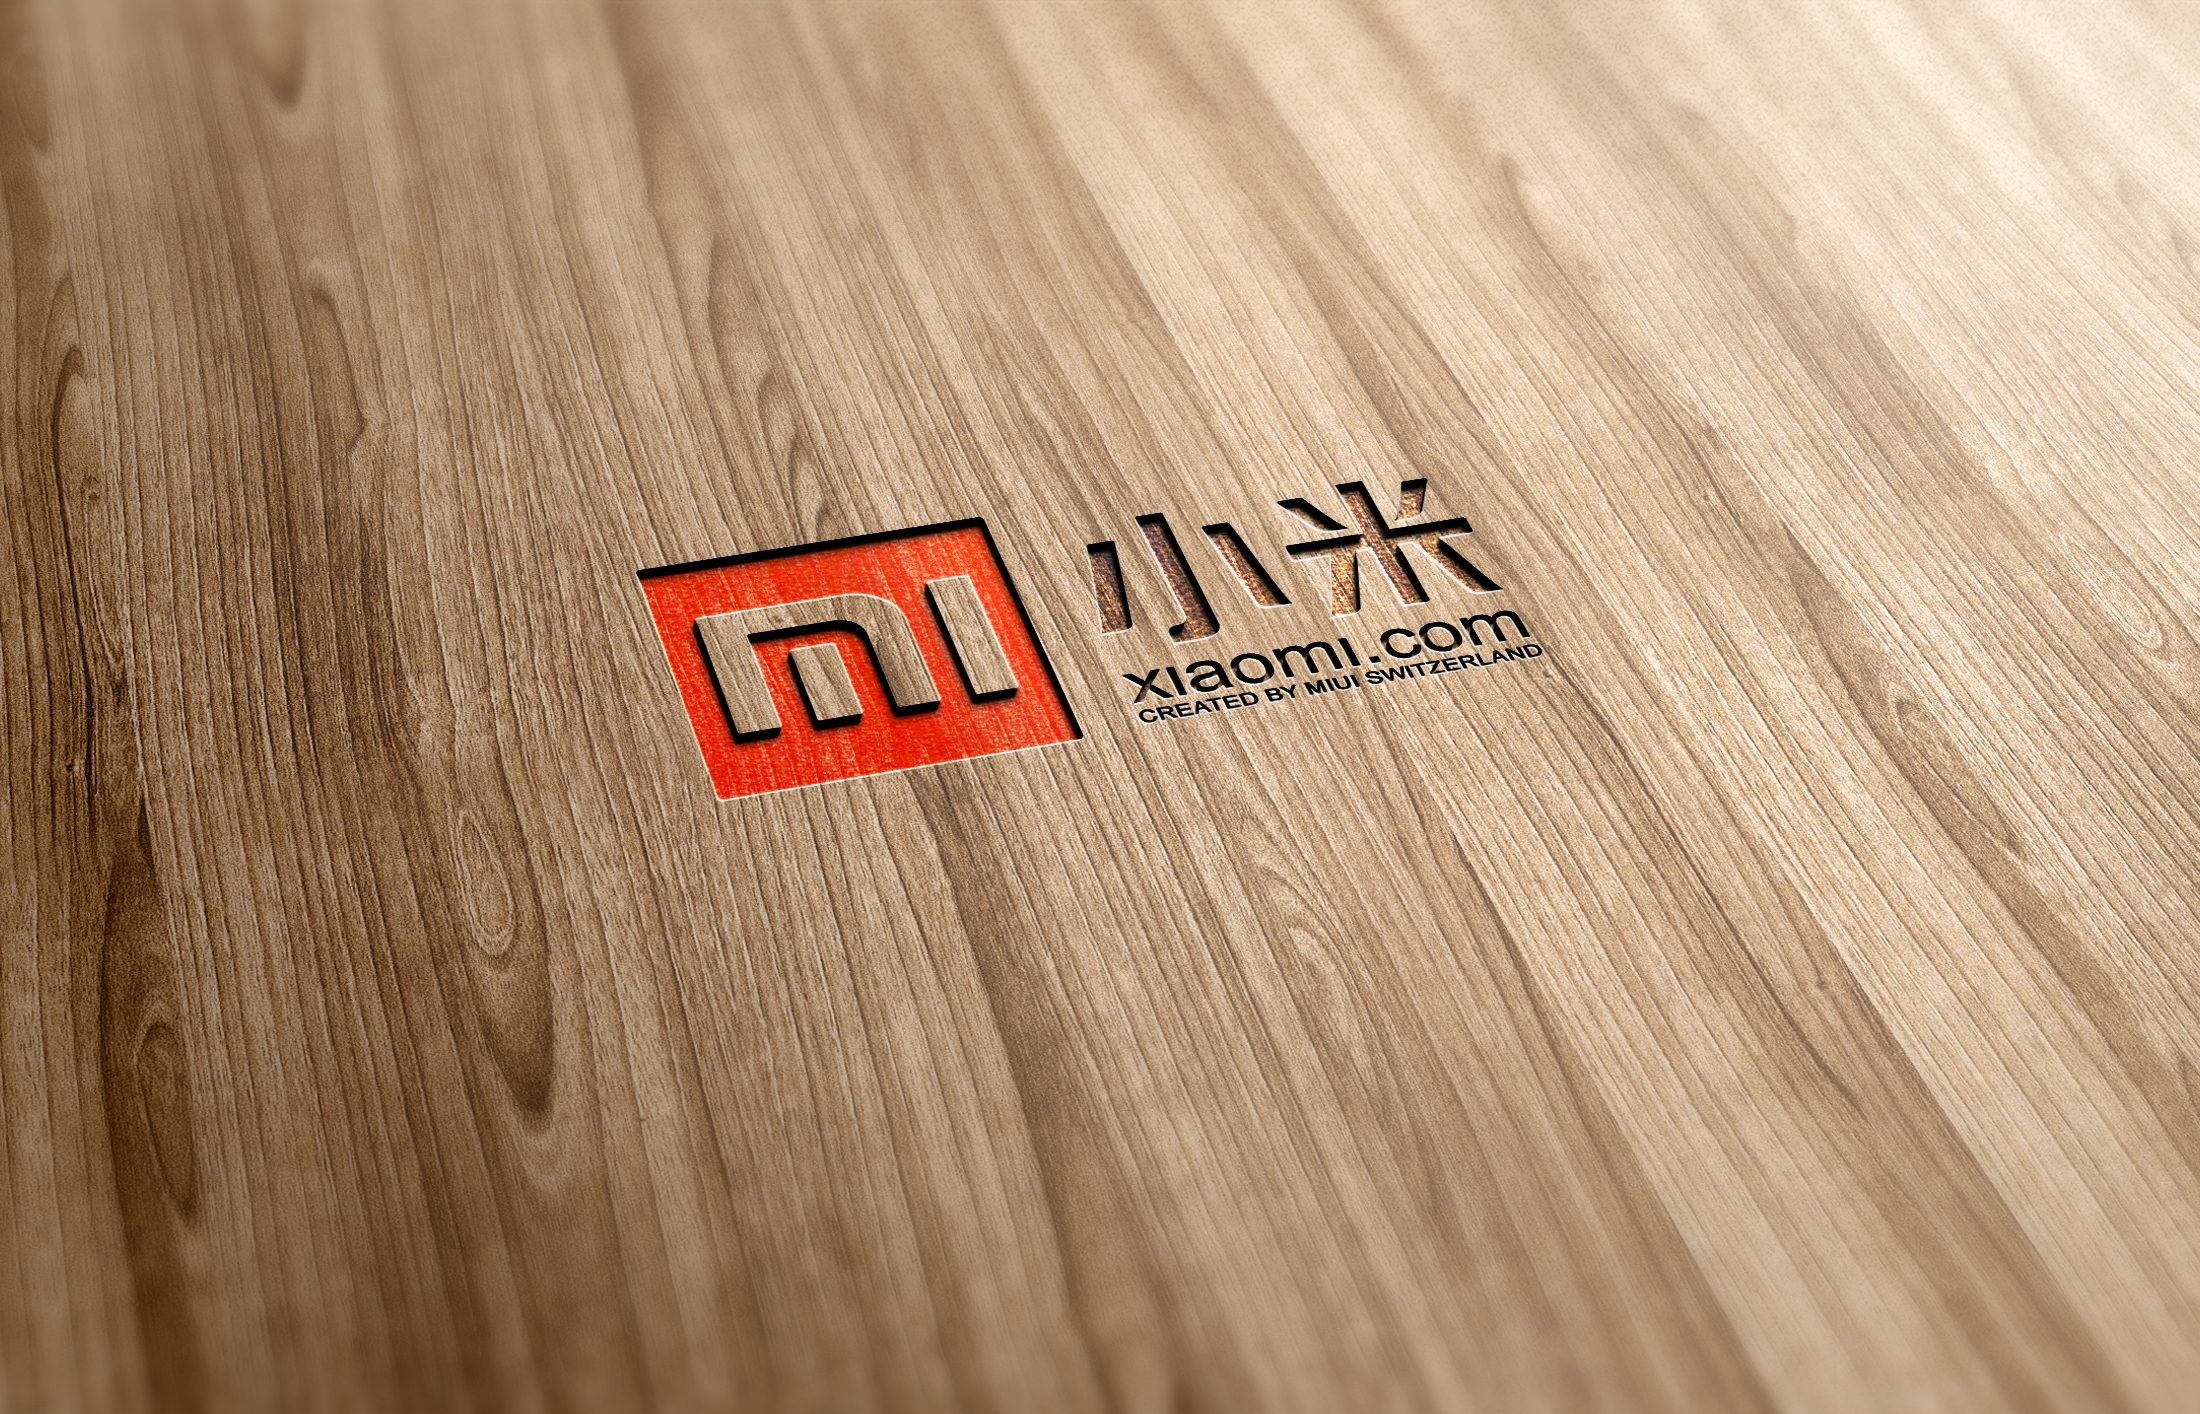 Xiaomi Wallpaper With Logo: Xiaomi By Xunil75 On DeviantArt